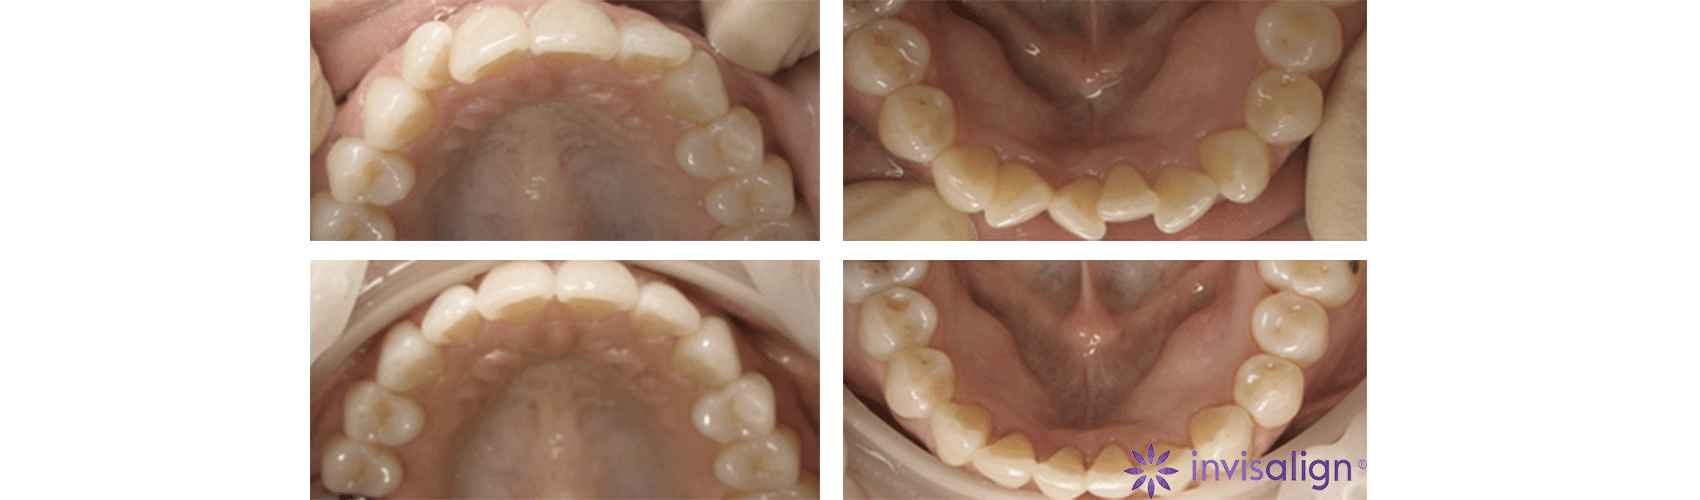 Before and after case of an alignment using Invisalign